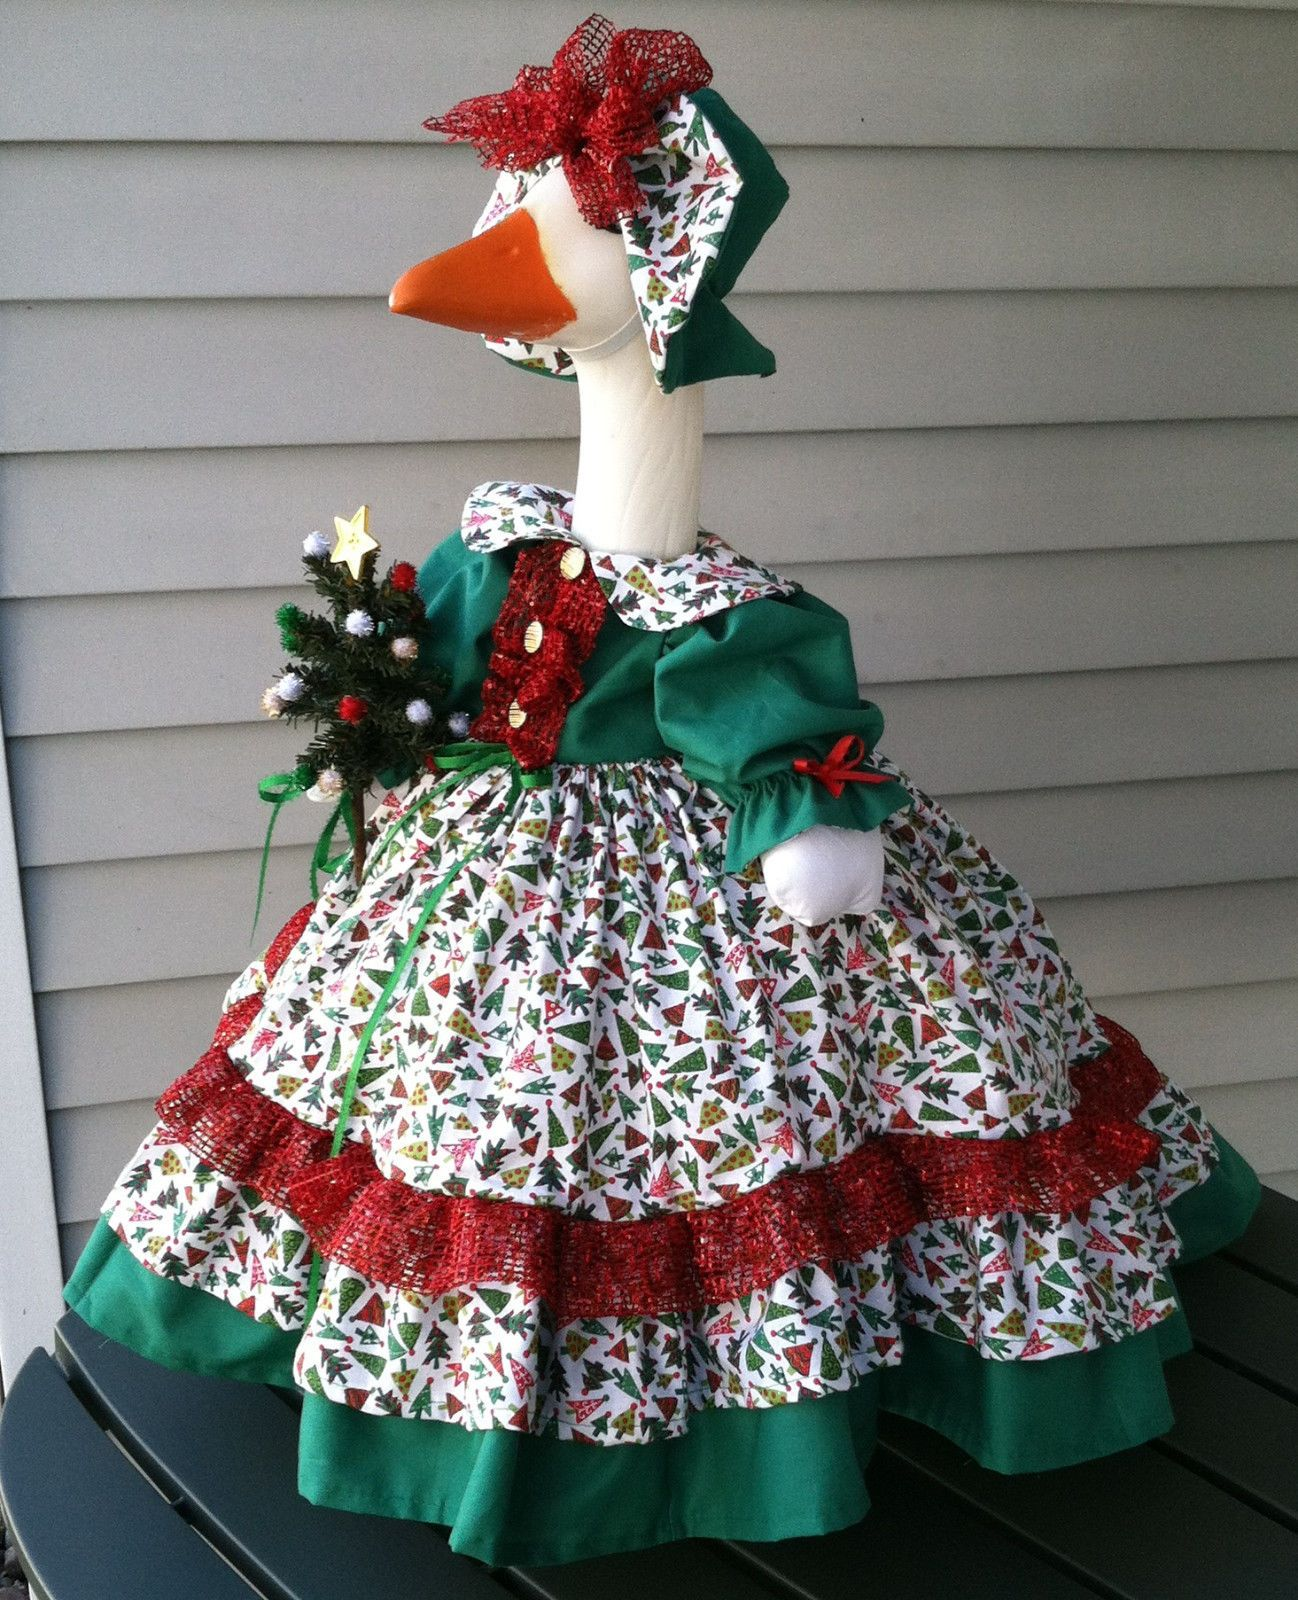 Goose Not Included The Skirt Collar And Top Ruffle On The Bottom Of The Skirt Were Made From A Cotton Fab Goose Clothes Christmas Tree Outfit Goose Costume